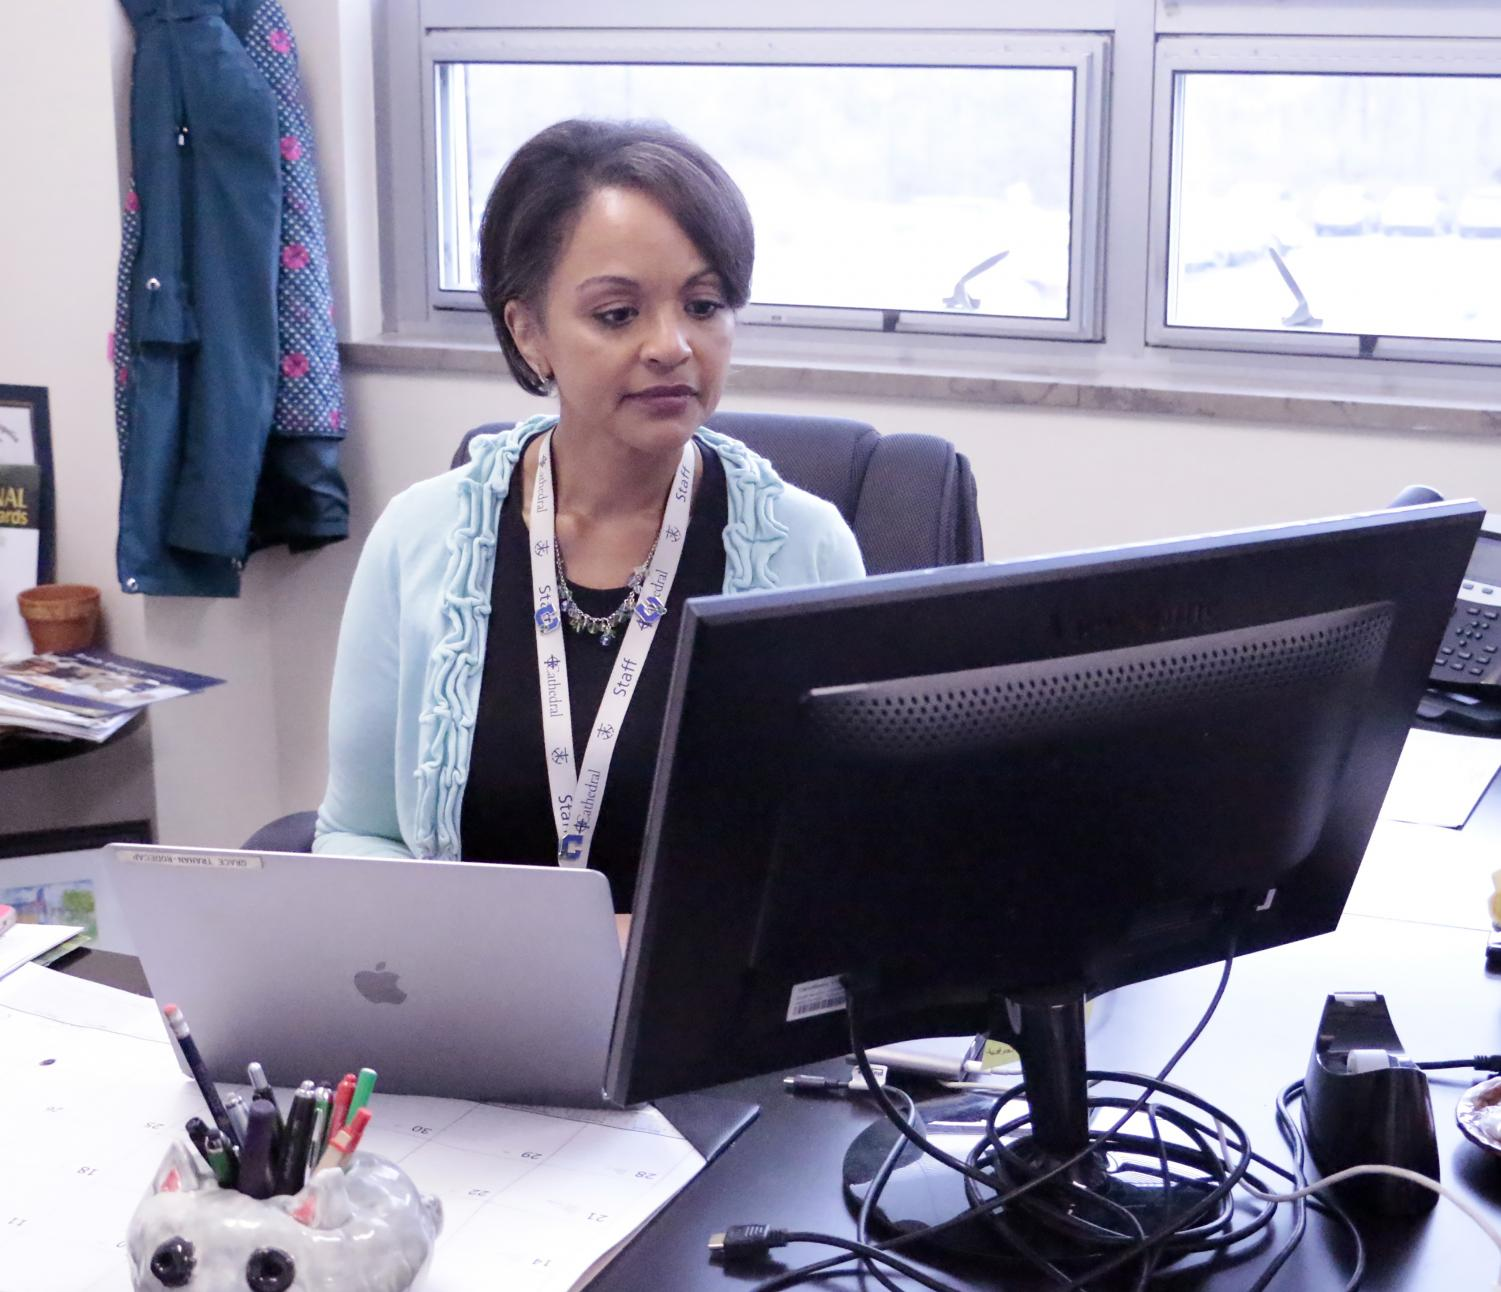 Mrs. Grace Rodecap works in her office.